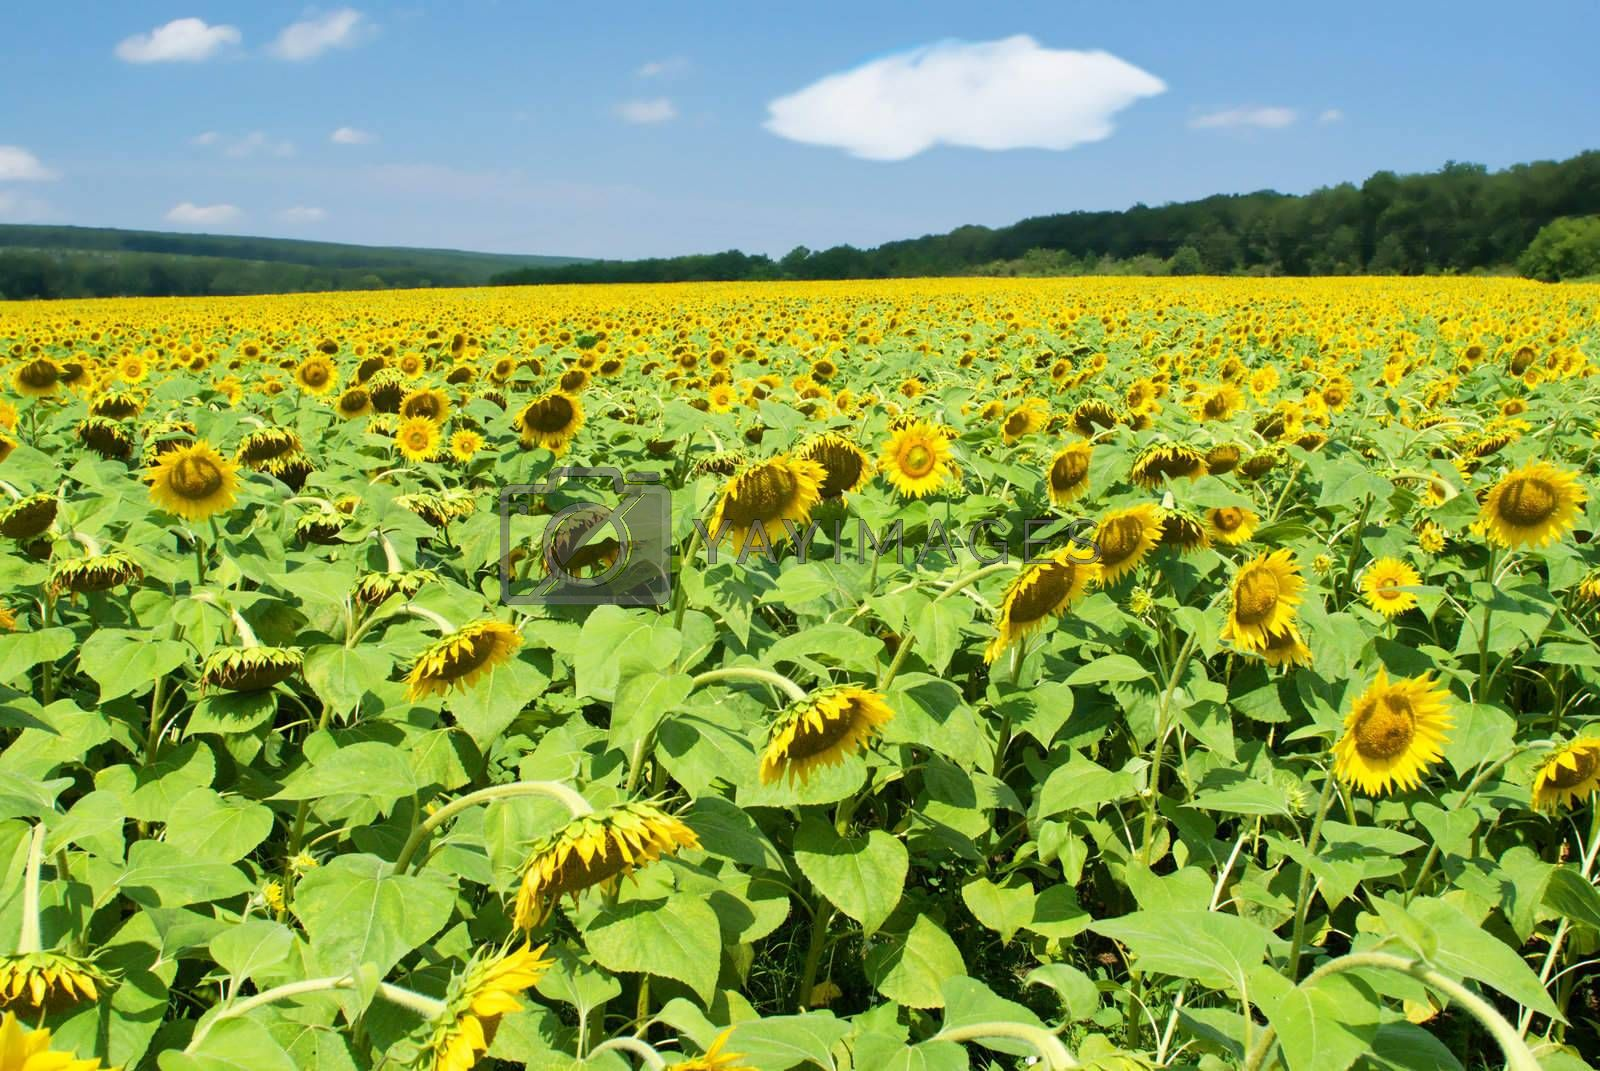 Royalty free image of Field of sunflowers in a summer sunny day by BIG_TAU